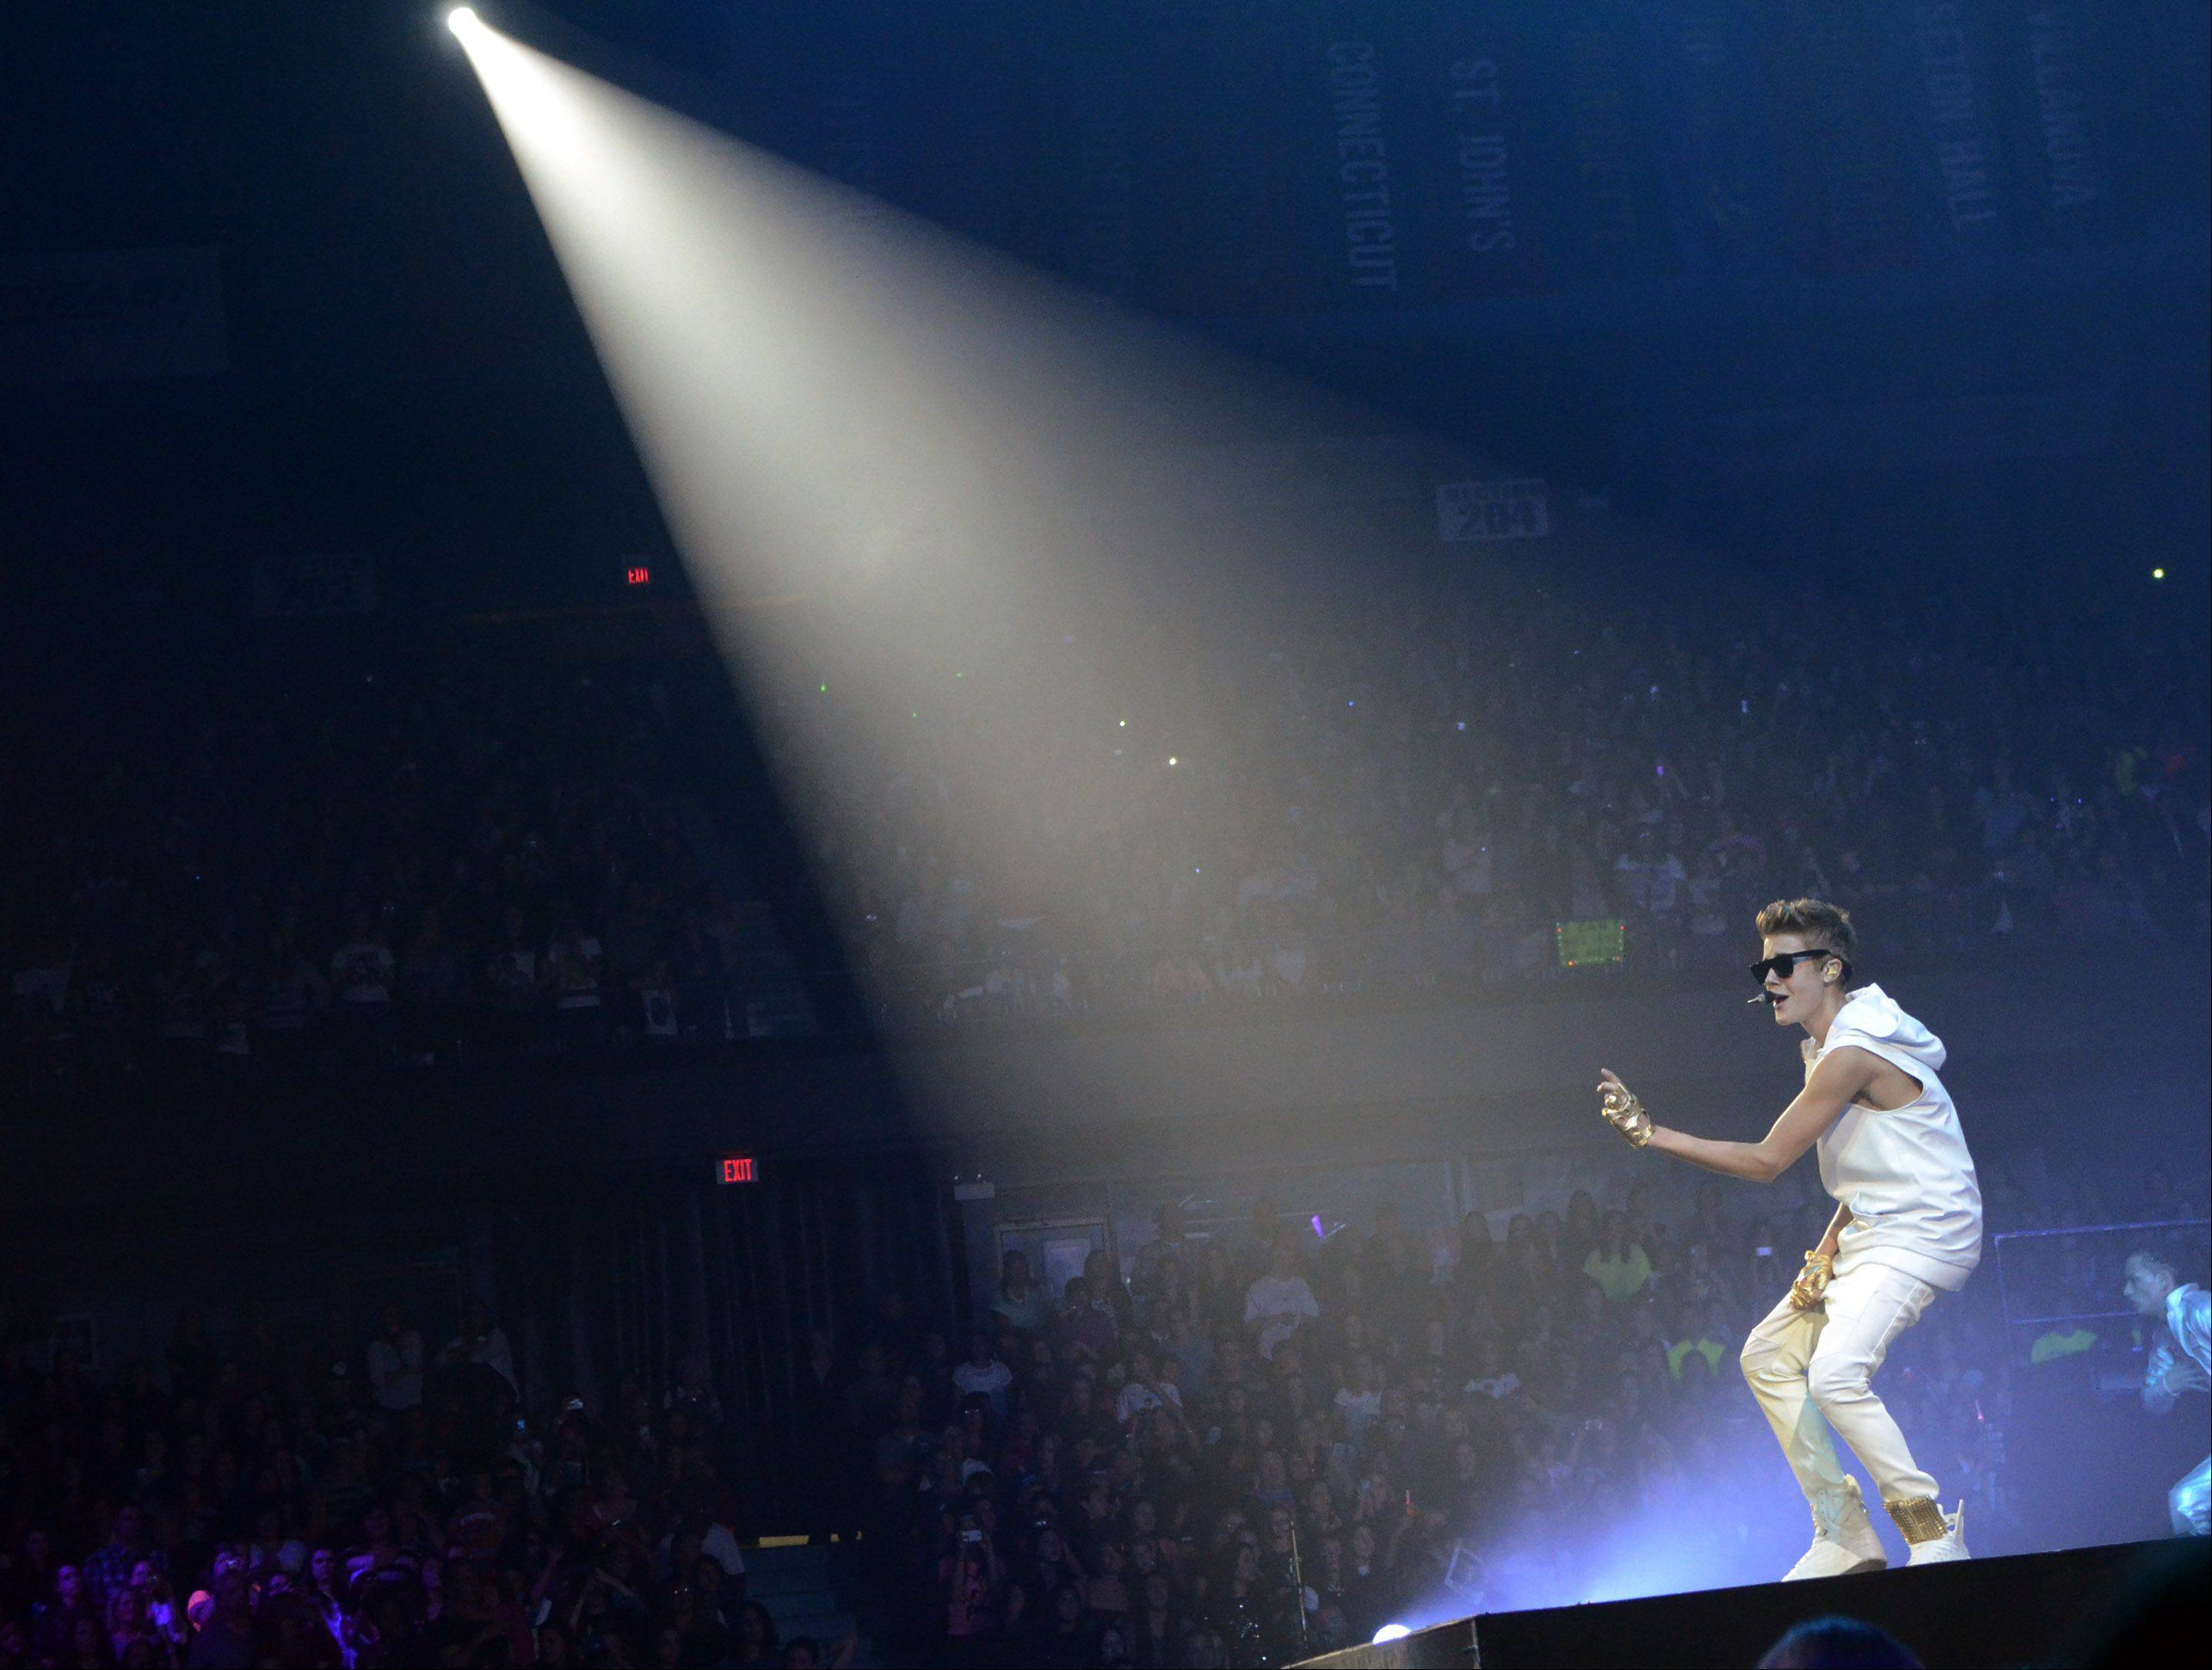 Justin Bieber performs during his Believe tour at the Allstate Arena in Rosemont on Tuesday, October 23, 2012.